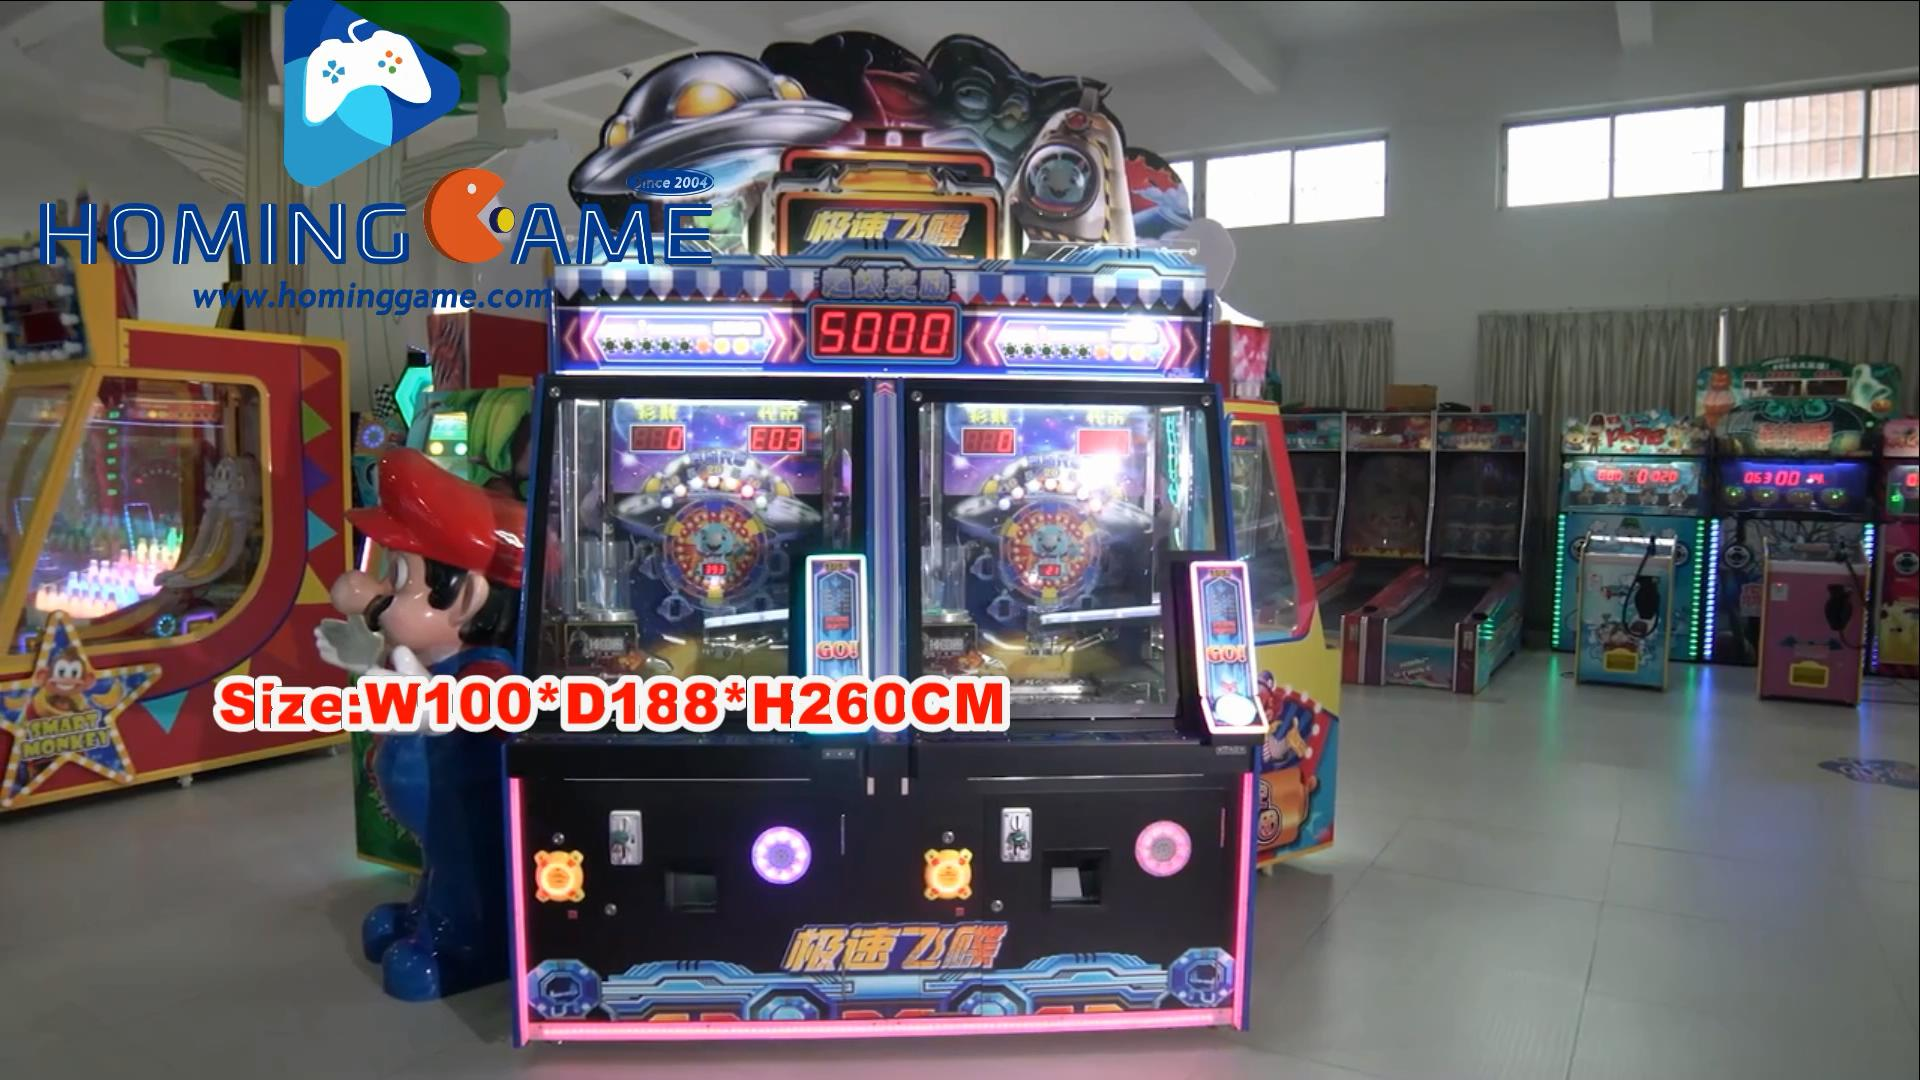 Hover race,hover race coin pusher game machine,hover race UFO coin pusher game machine,UFO coin pusher game machine,UFO token pusher game machine,happy crazy circus coin pusher game machine,happy crazy circus,happy crazy circus coin pusher arcade game machine,crazy circus,crazy circus coin pusher game machine,super crazy circus coin pusher game machine,penny pusher arcade game machine,penny pusher game machine,coin pusher game,token pusher game machine,crazy circus coin pusher arcade game machine,game machine,arcade game machine,coin operated game machine,indoor game machine,electrical game machine,amusement park game equipment,game equipment,coin pusher redemption game machine,hominggame,hominggame coin pusher game machine,gametube.hk,www.gametube.hk,coin pusher arcade games,3 player coin pusher game machine,2 player coin pusher game machine,flip 2 win coin pusher game machine,gold fort coin pusher game machine,las vegas coin pusher game machine,Pharaoh